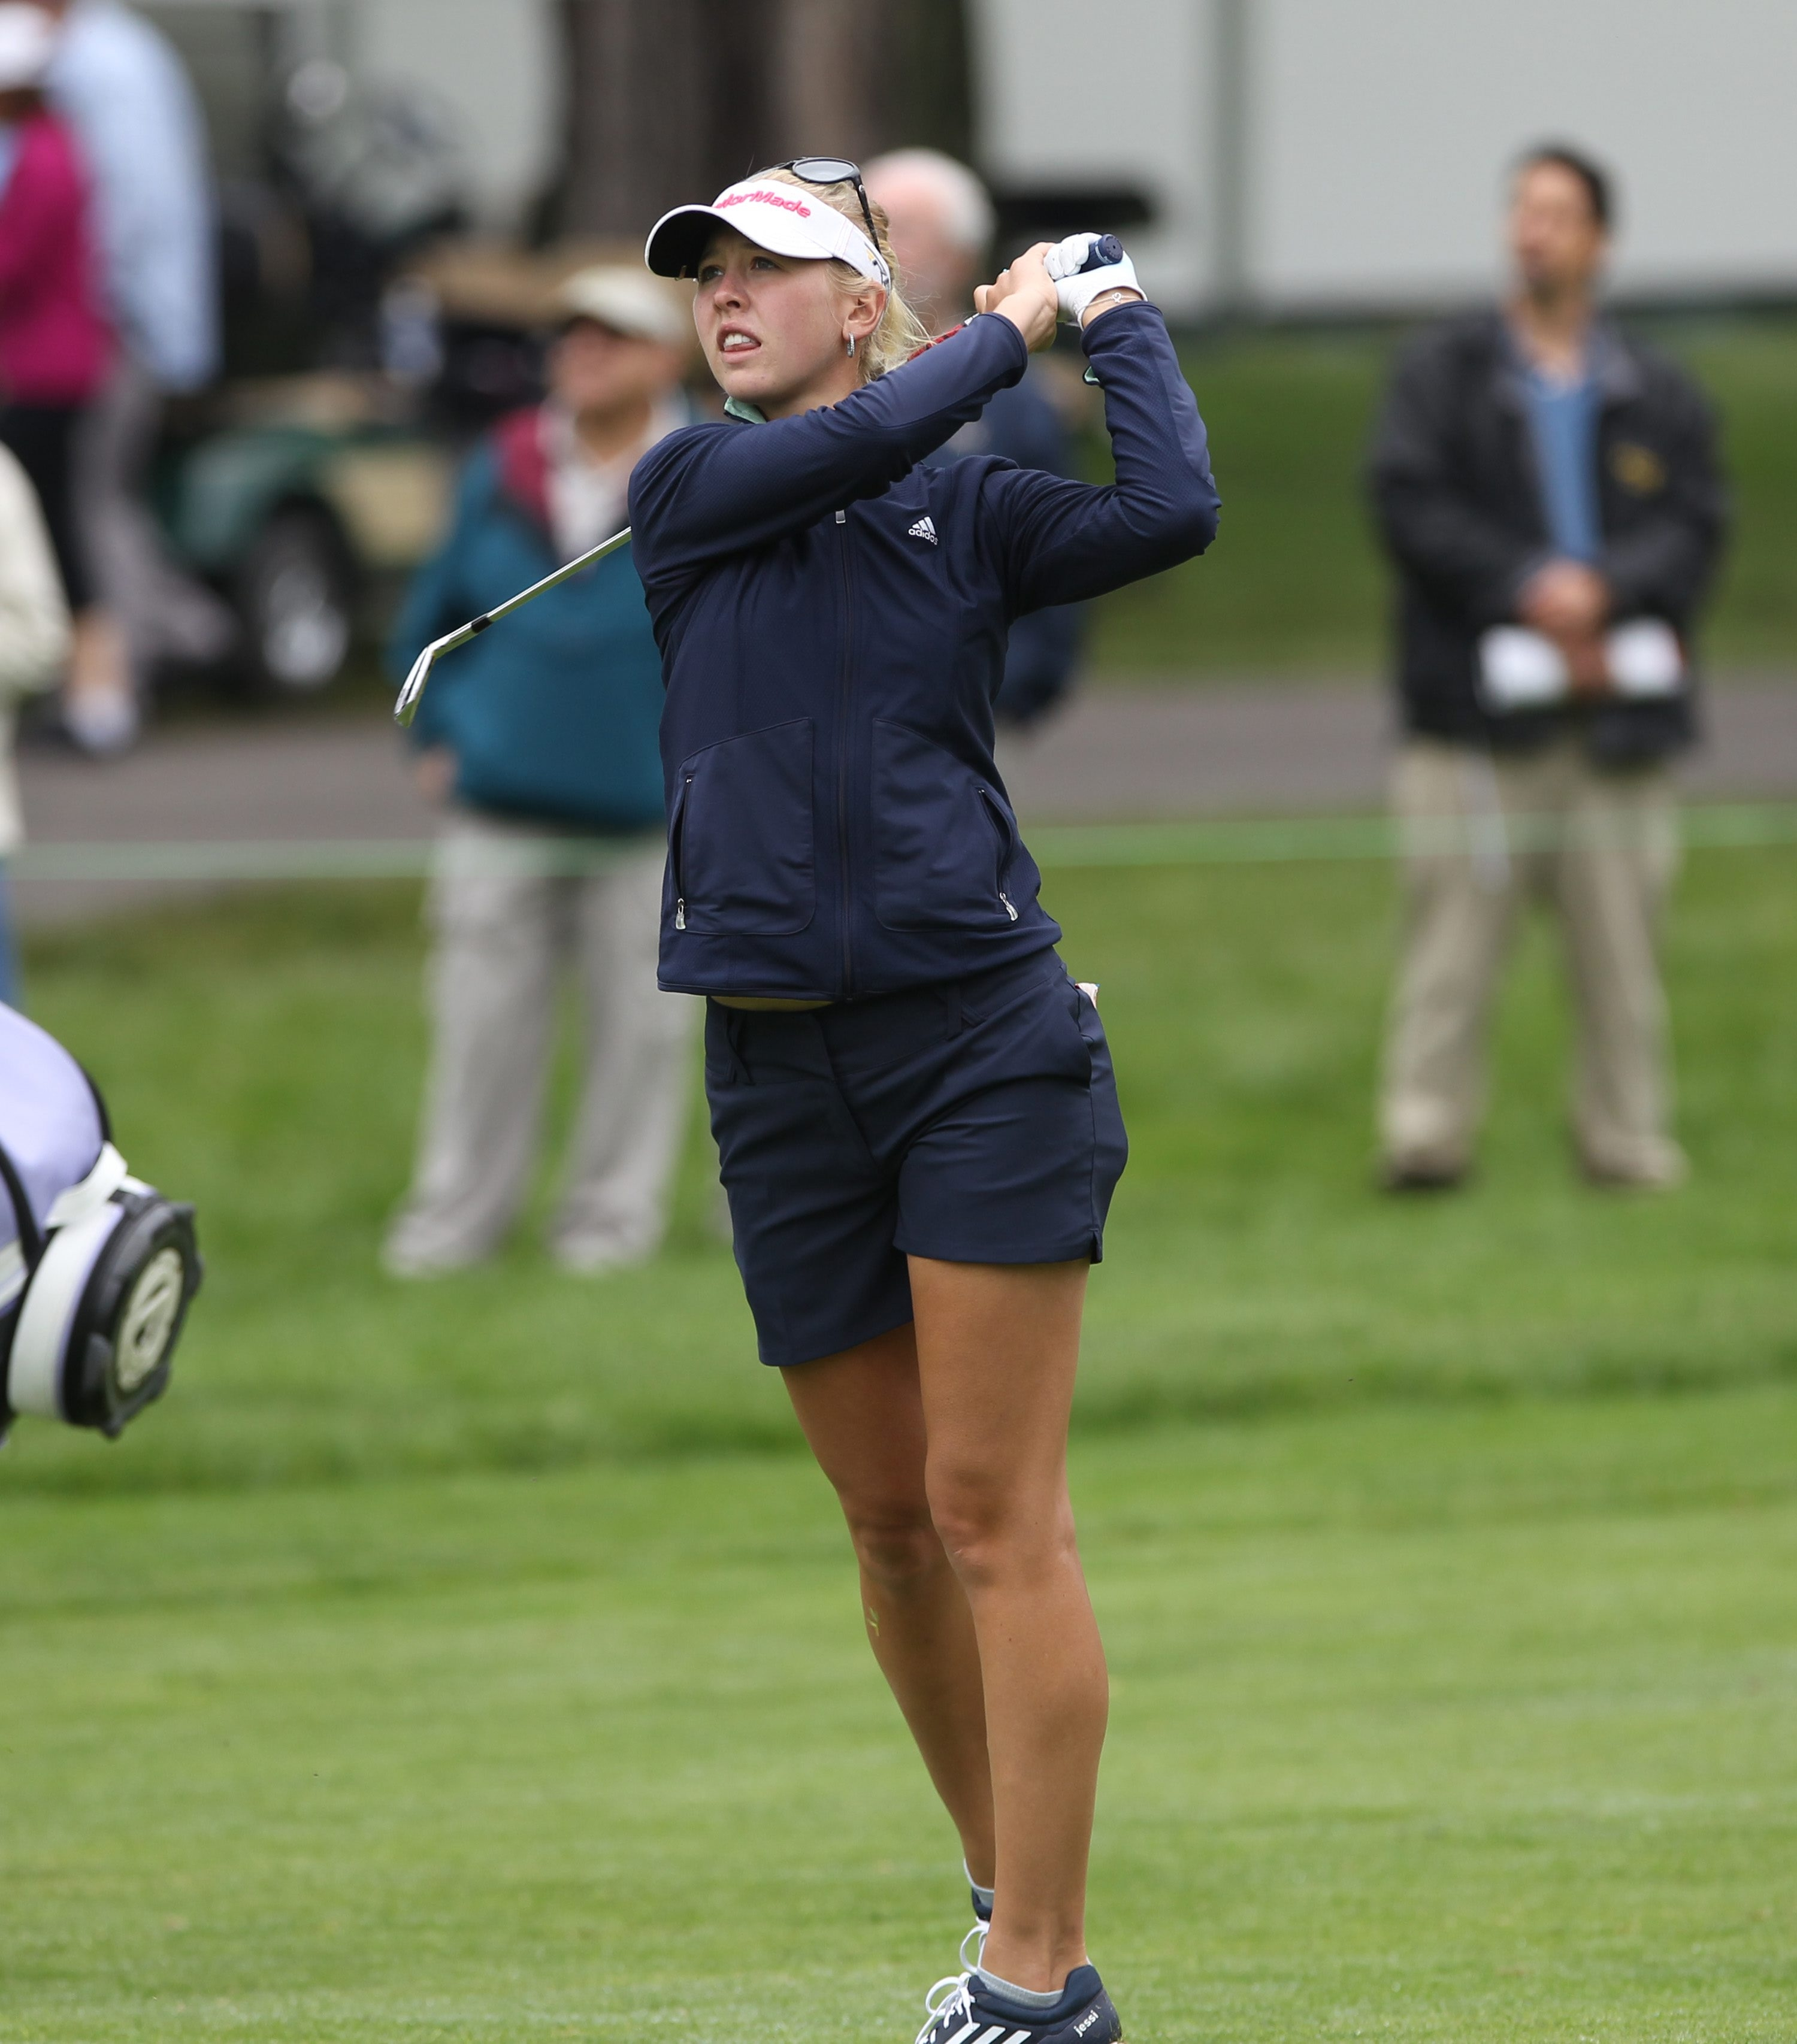 A relaxed Jessica Korda fired a 2-under-par 70 on Friday, putting her in a tie for fifth place.